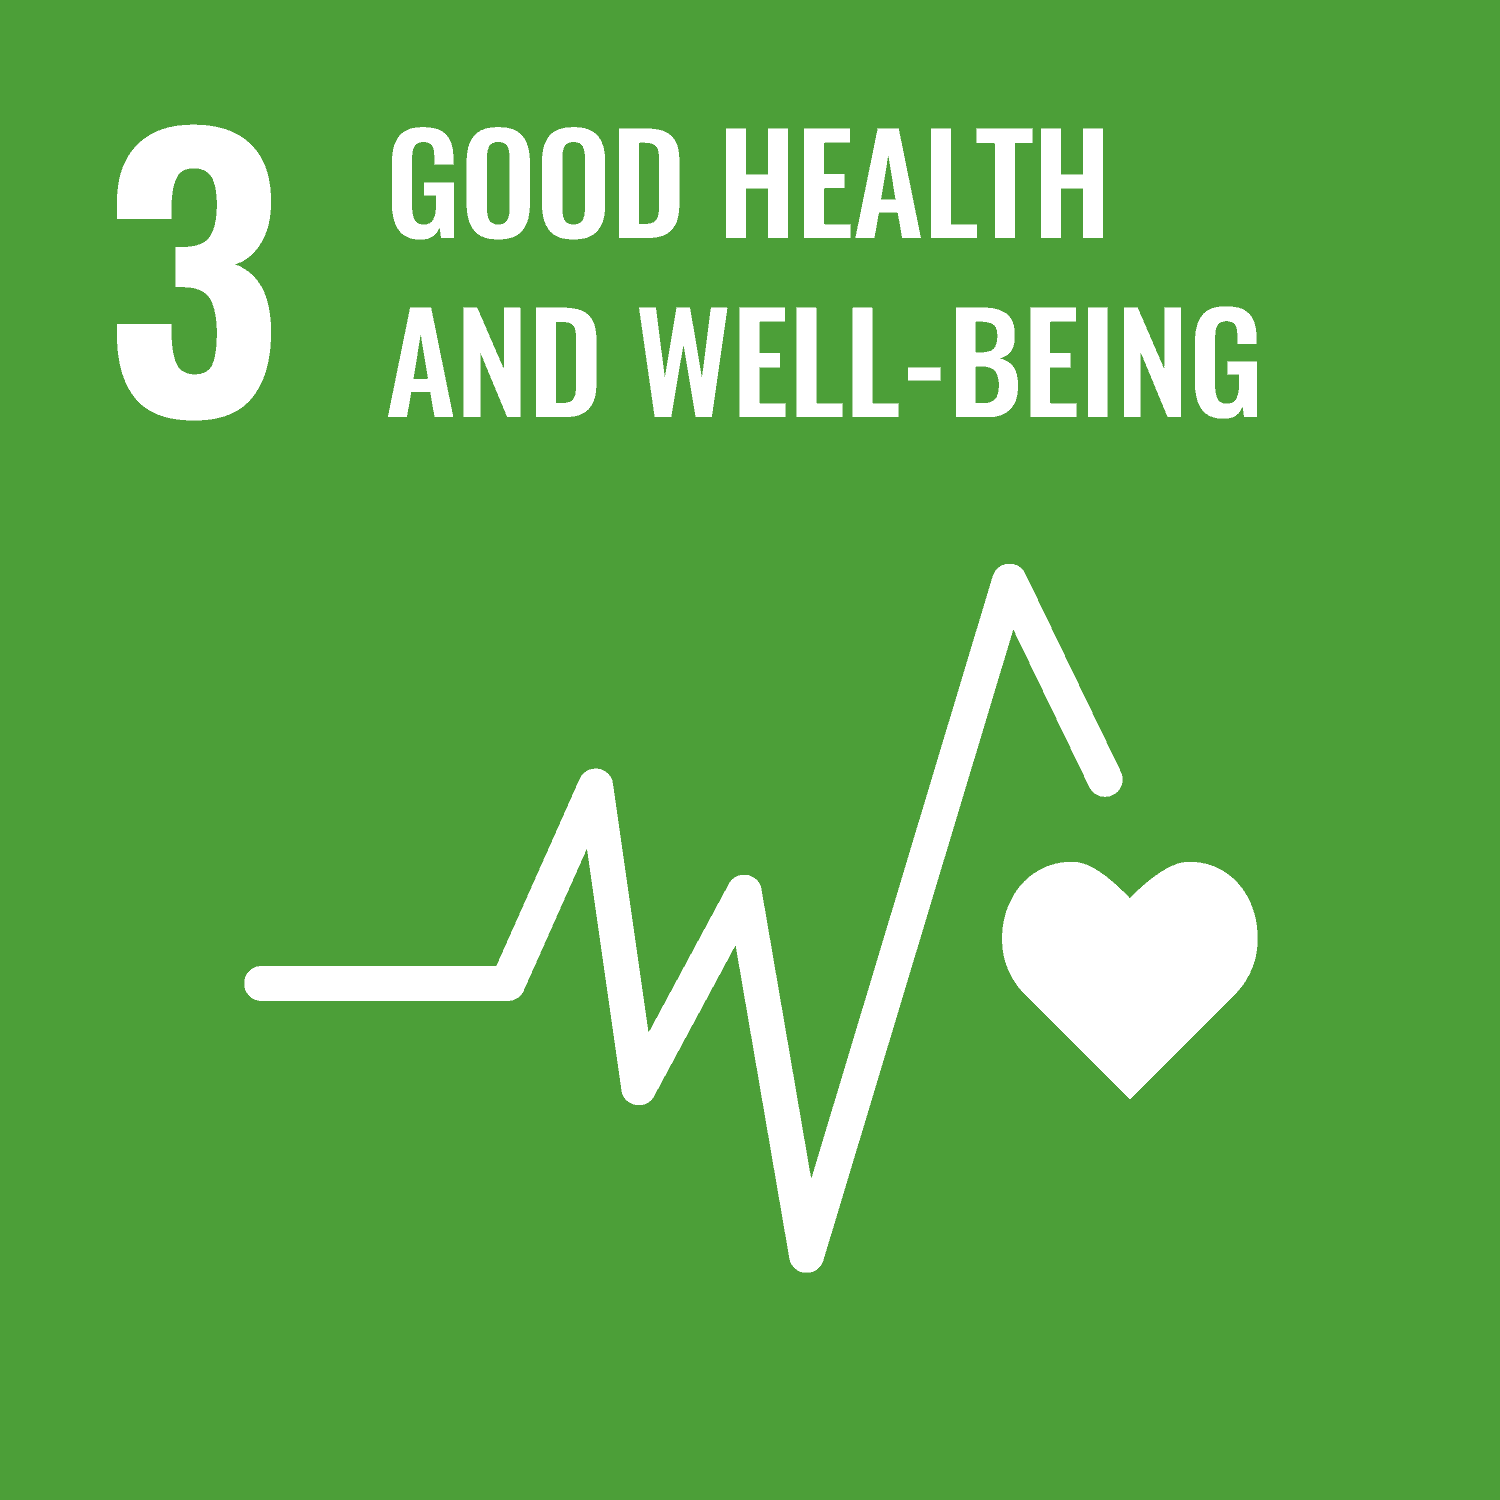 SDG 3 Good Health and Wellbeing - but no Mental Health?